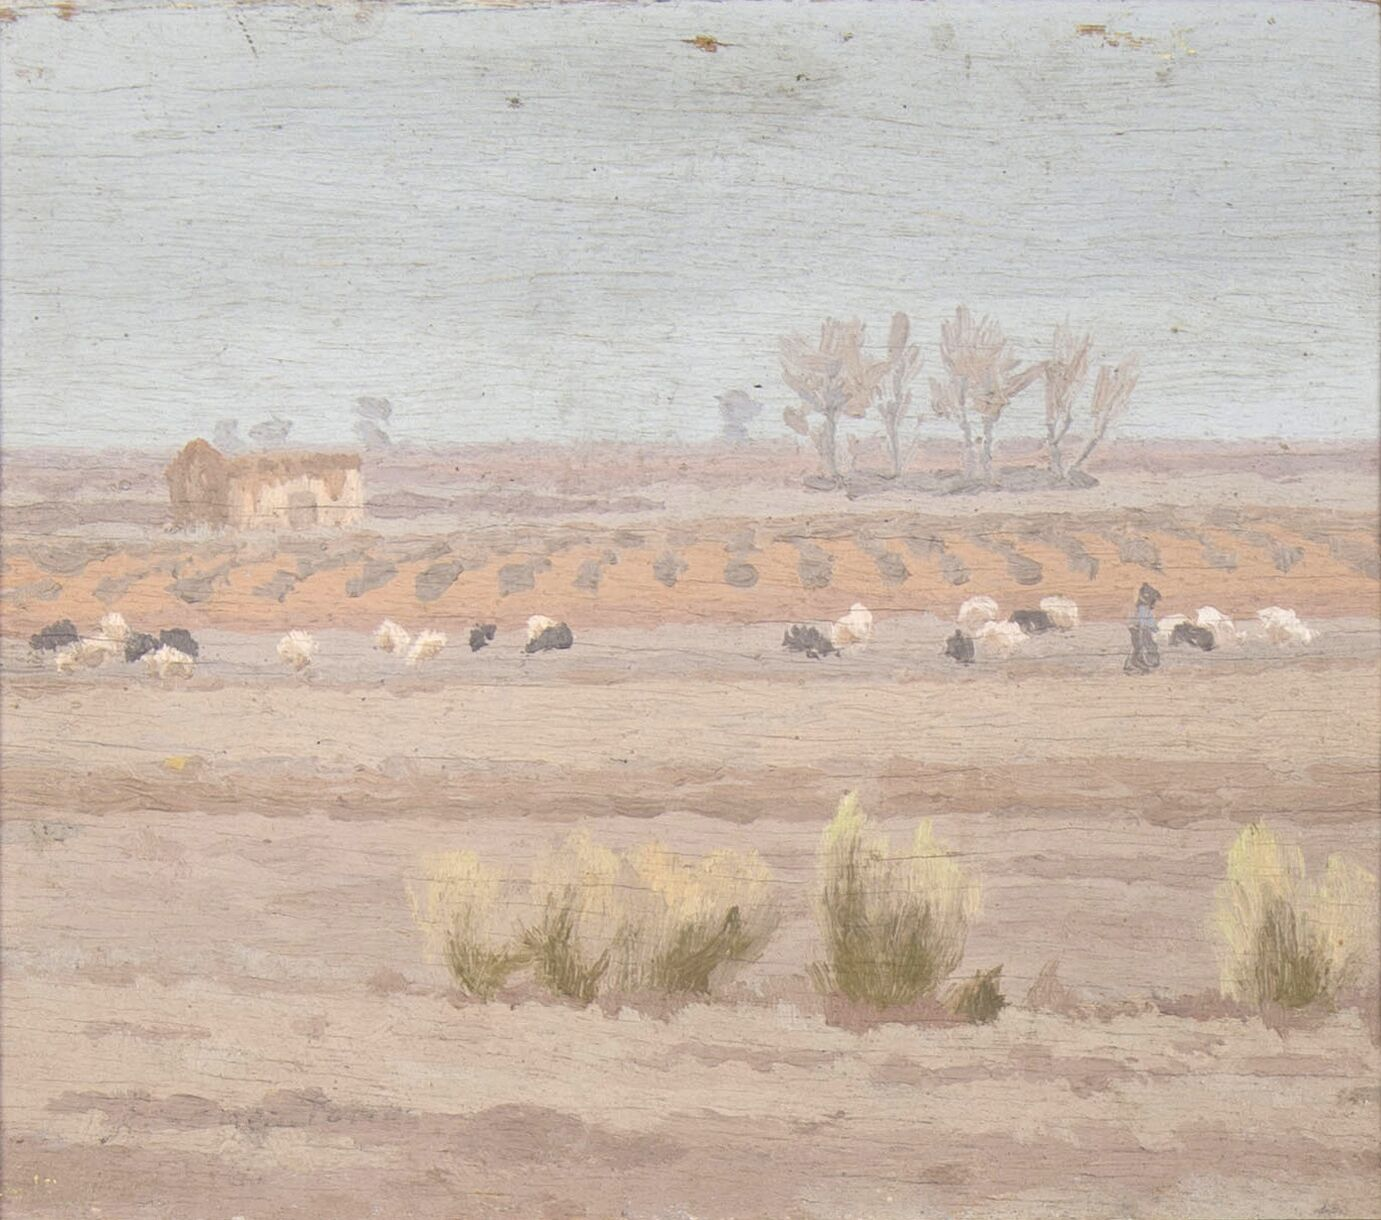 Winter landscape with a cattle